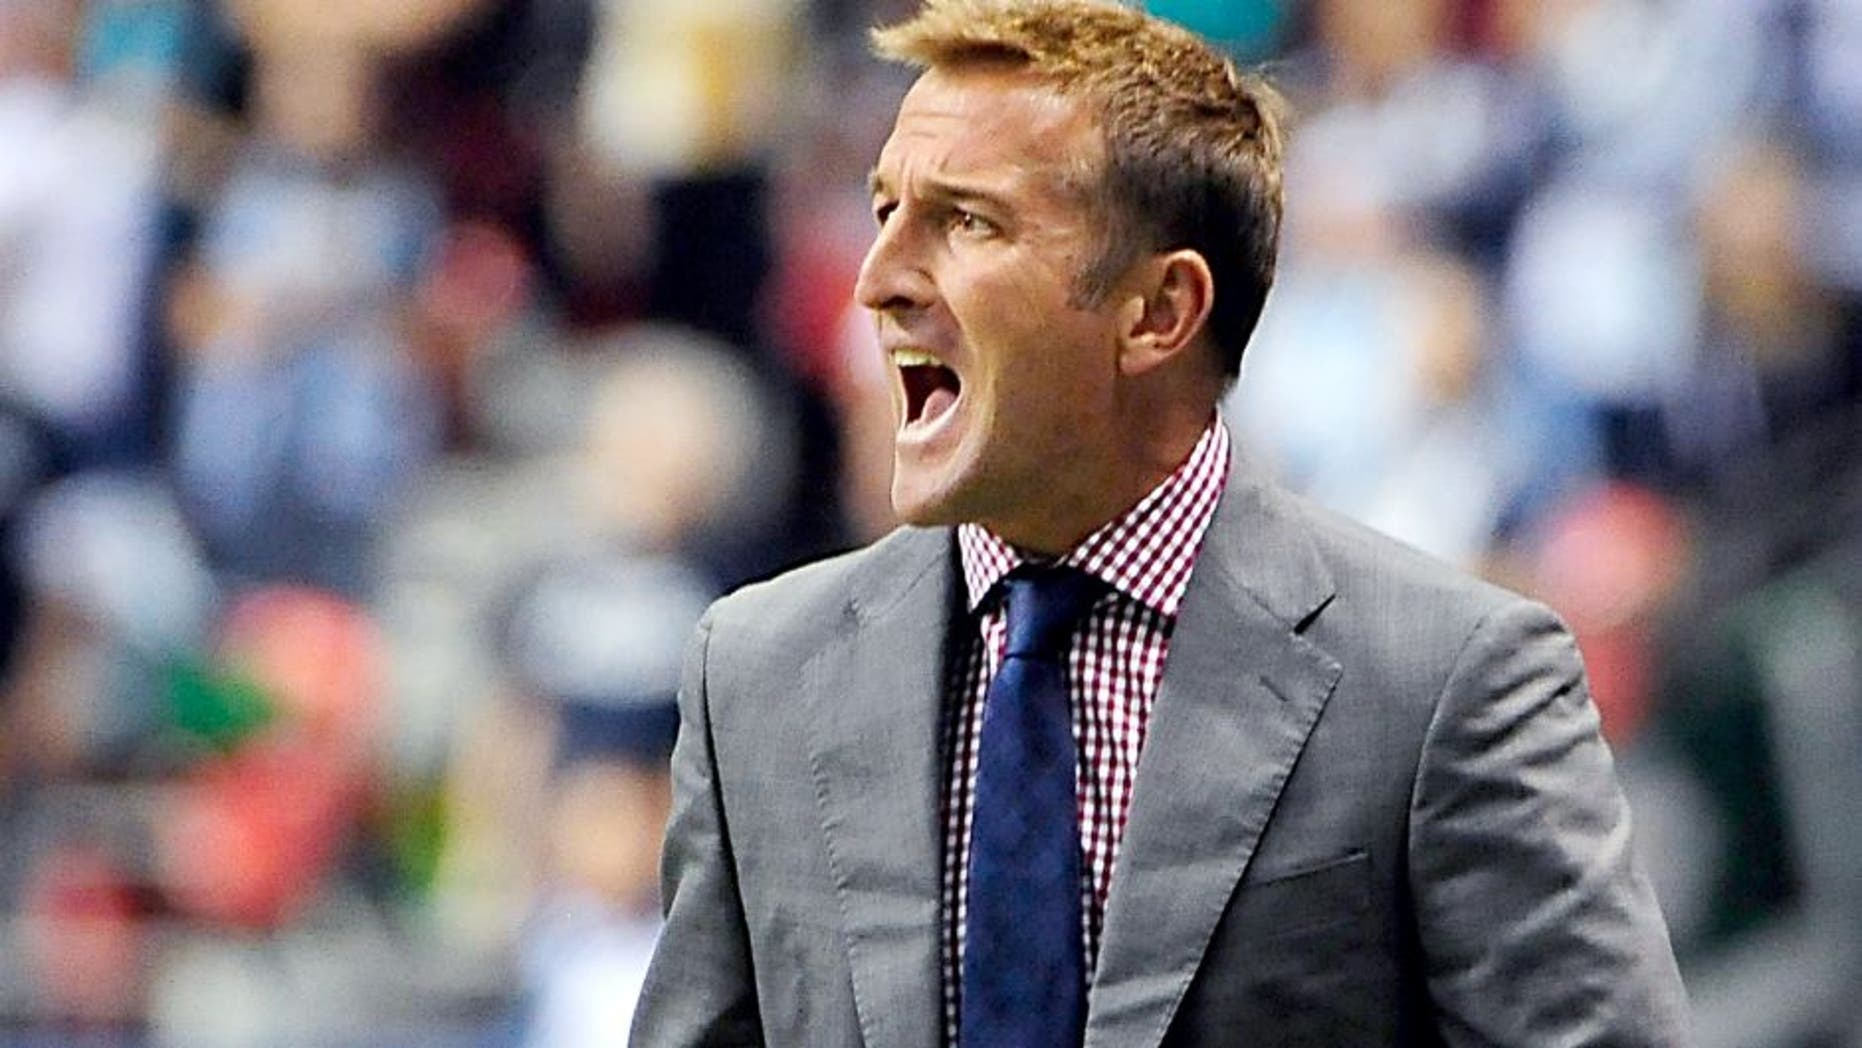 Sep 28, 2013; Vancouver, British Columbia, CAN; Real Salt Lake head coach Jason Kreis during the second half against the Vancouver Whitecaps at BC Place. The Real Salt Lake won 1-0. Mandatory Credit: Anne-Marie Sorvin-USA TODAY Sports